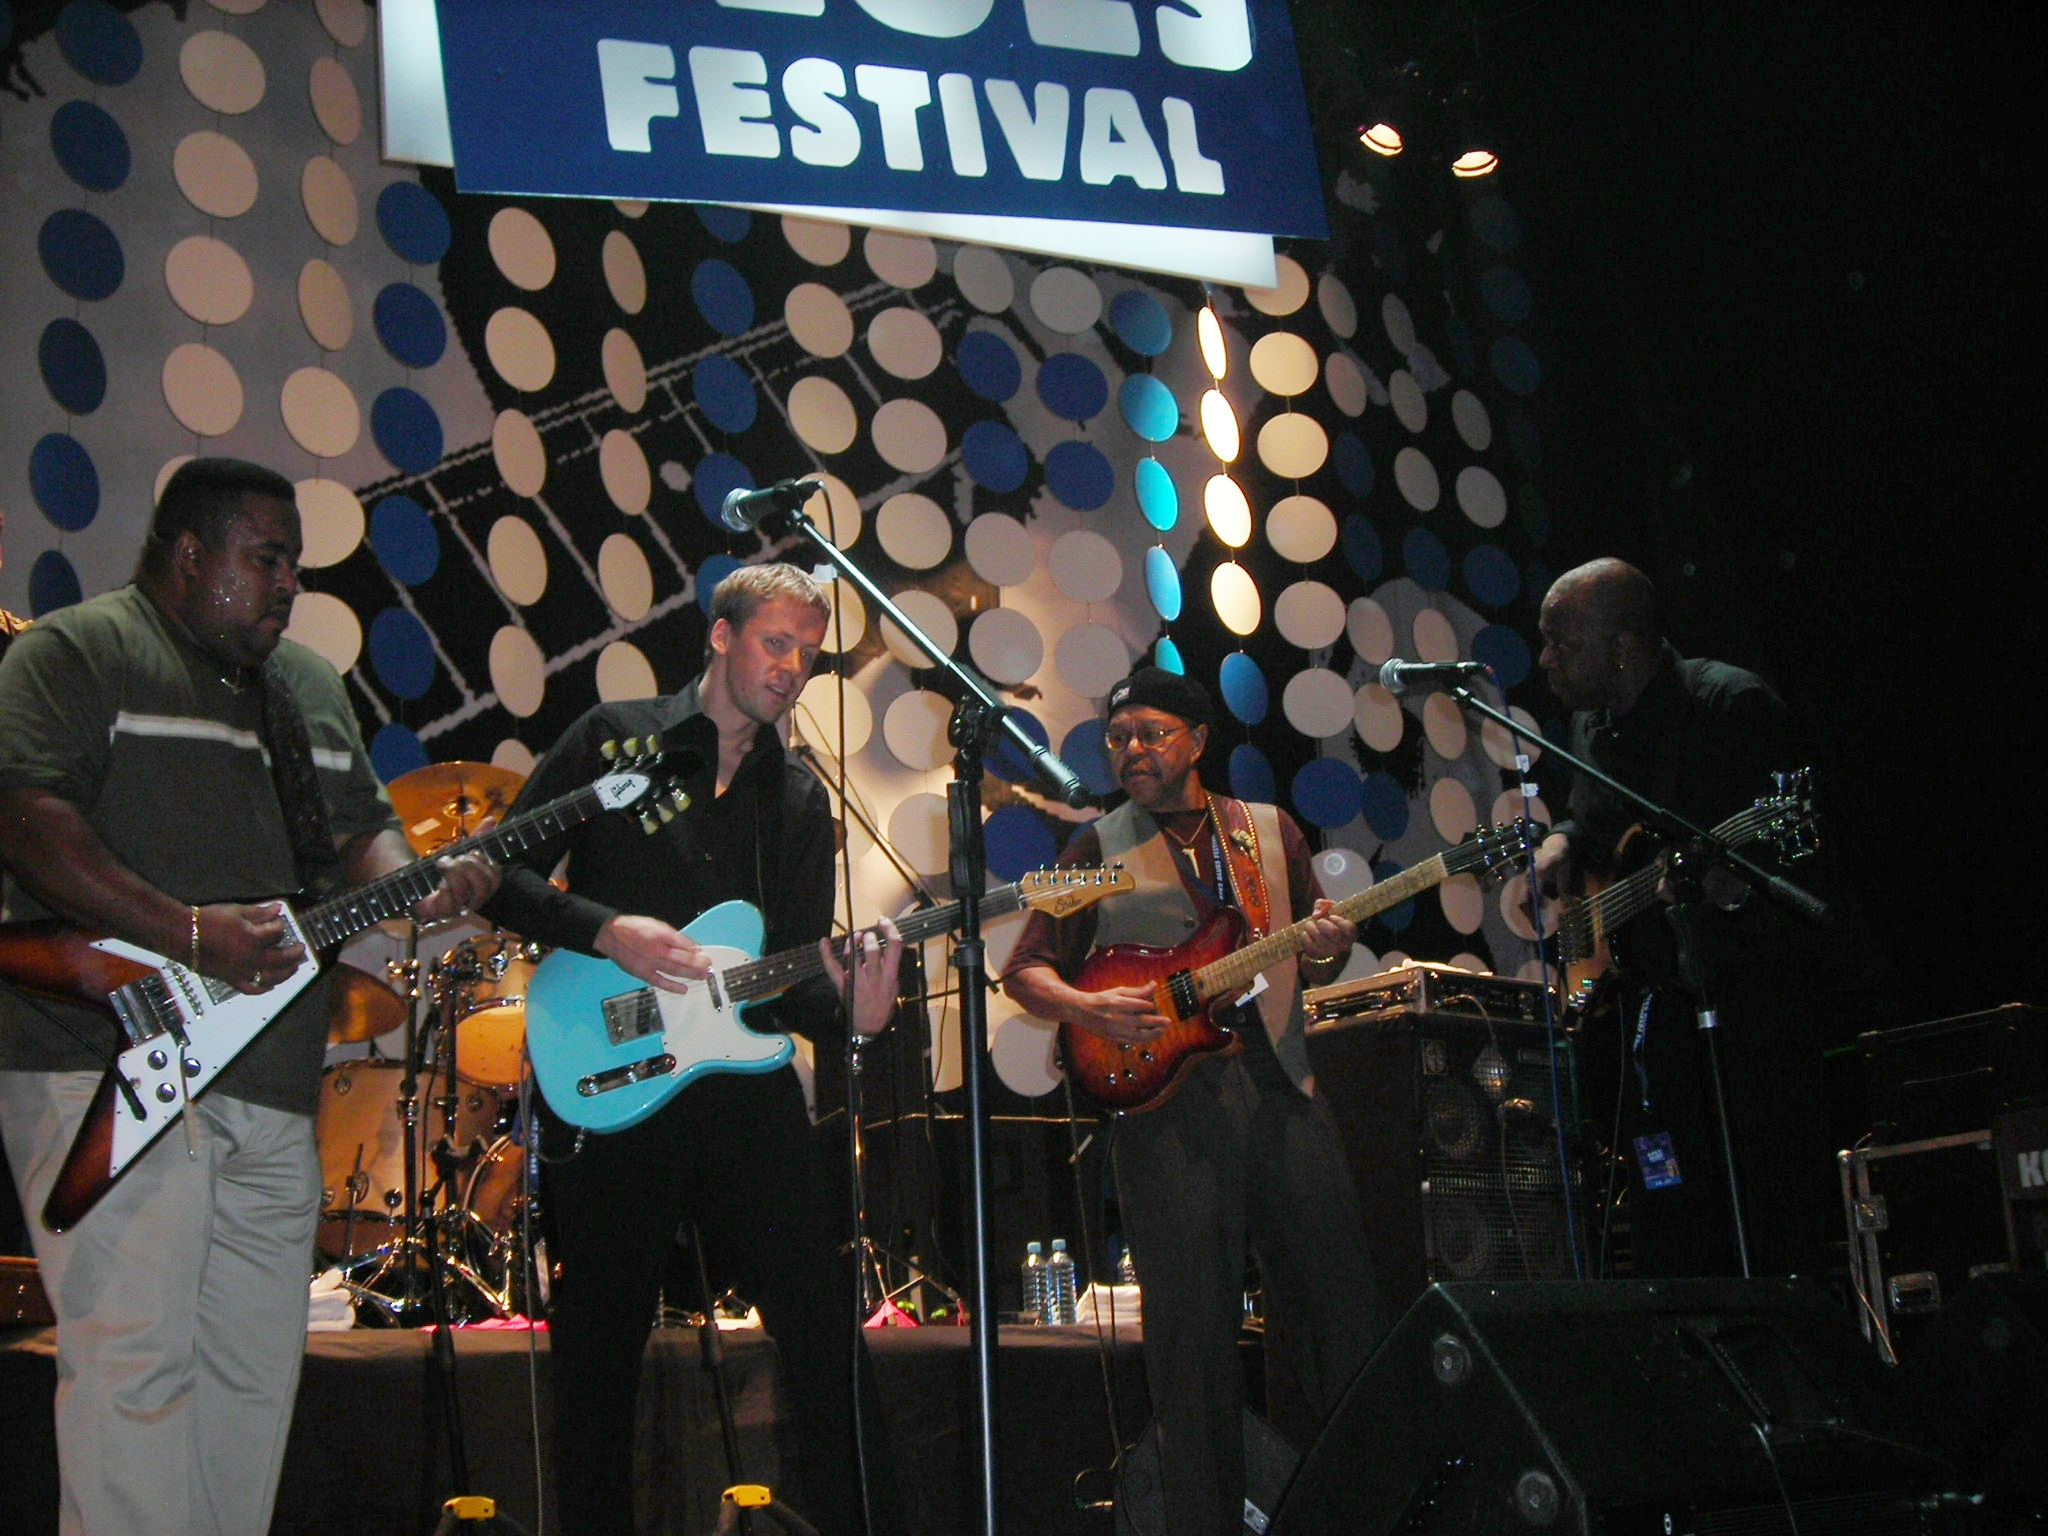 Efes Blues Festival - a memorable stint in Russia that took us to St. Petersburg and Moscow in 2010. I'm sharing the stage with Larry Mc Cray, Larry Garner and Larry Garner's bass player, Shedrick Nellon